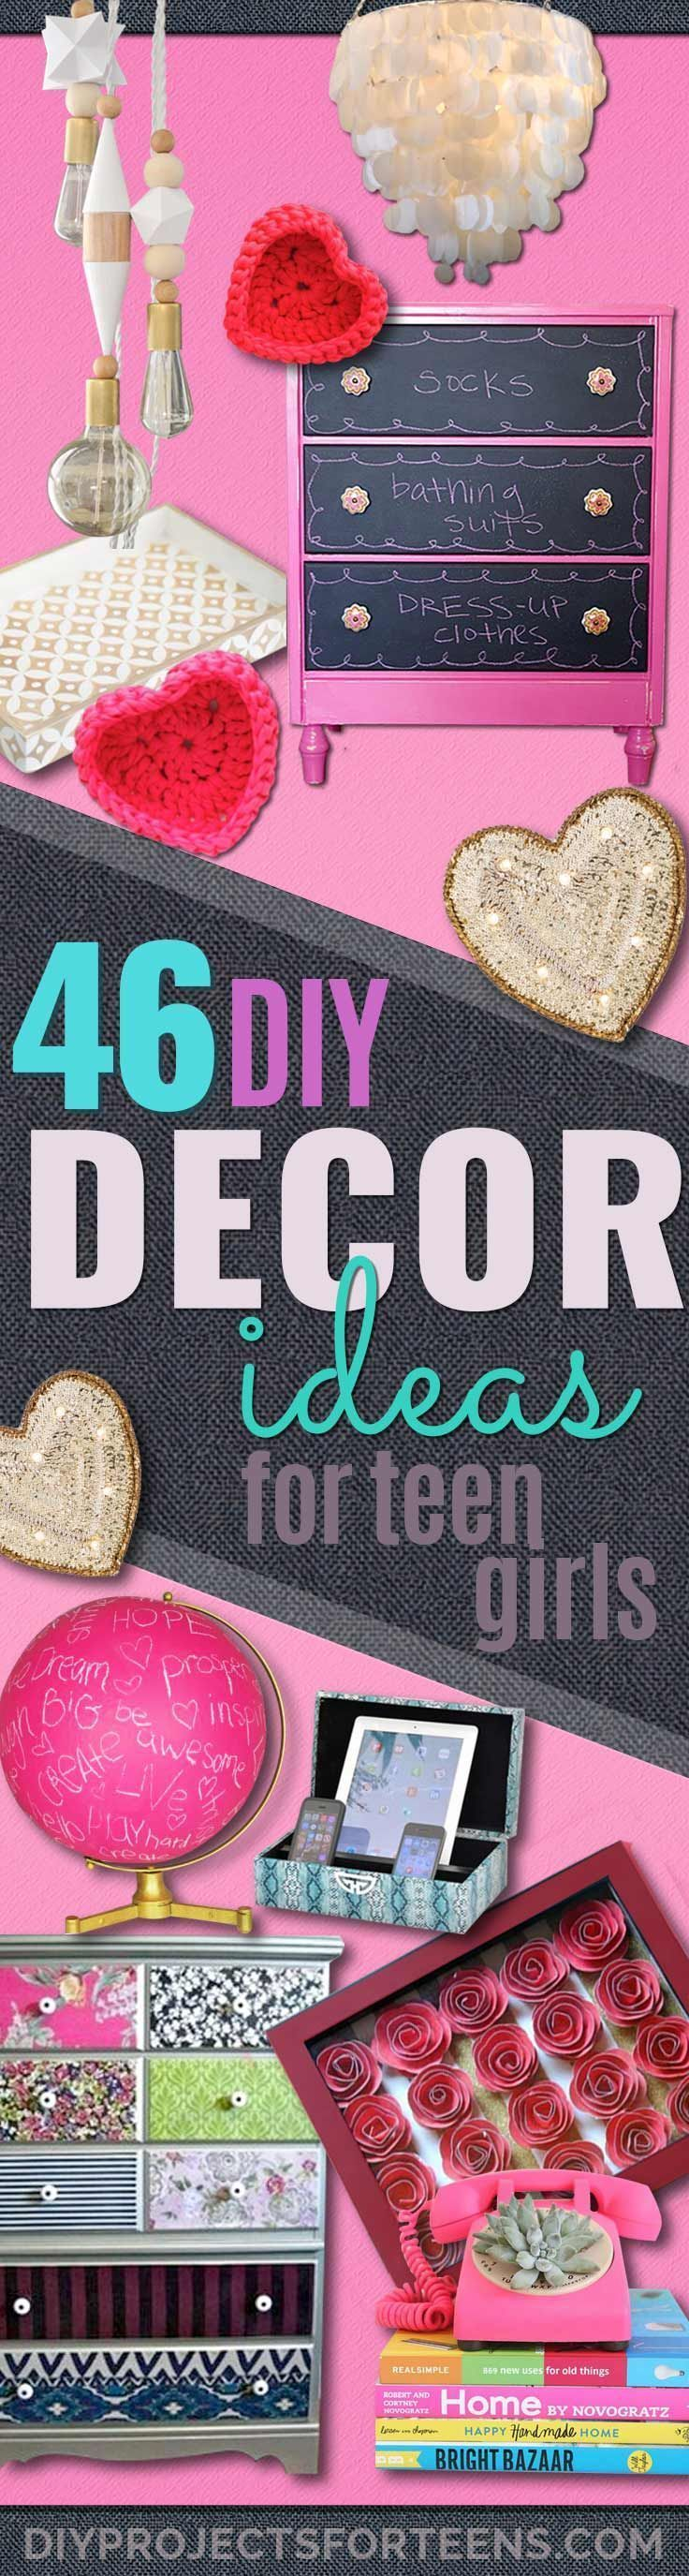 43 most awesome diy decor ideas for teen girls - Diy Teenage Bedroom Decorating Ideas